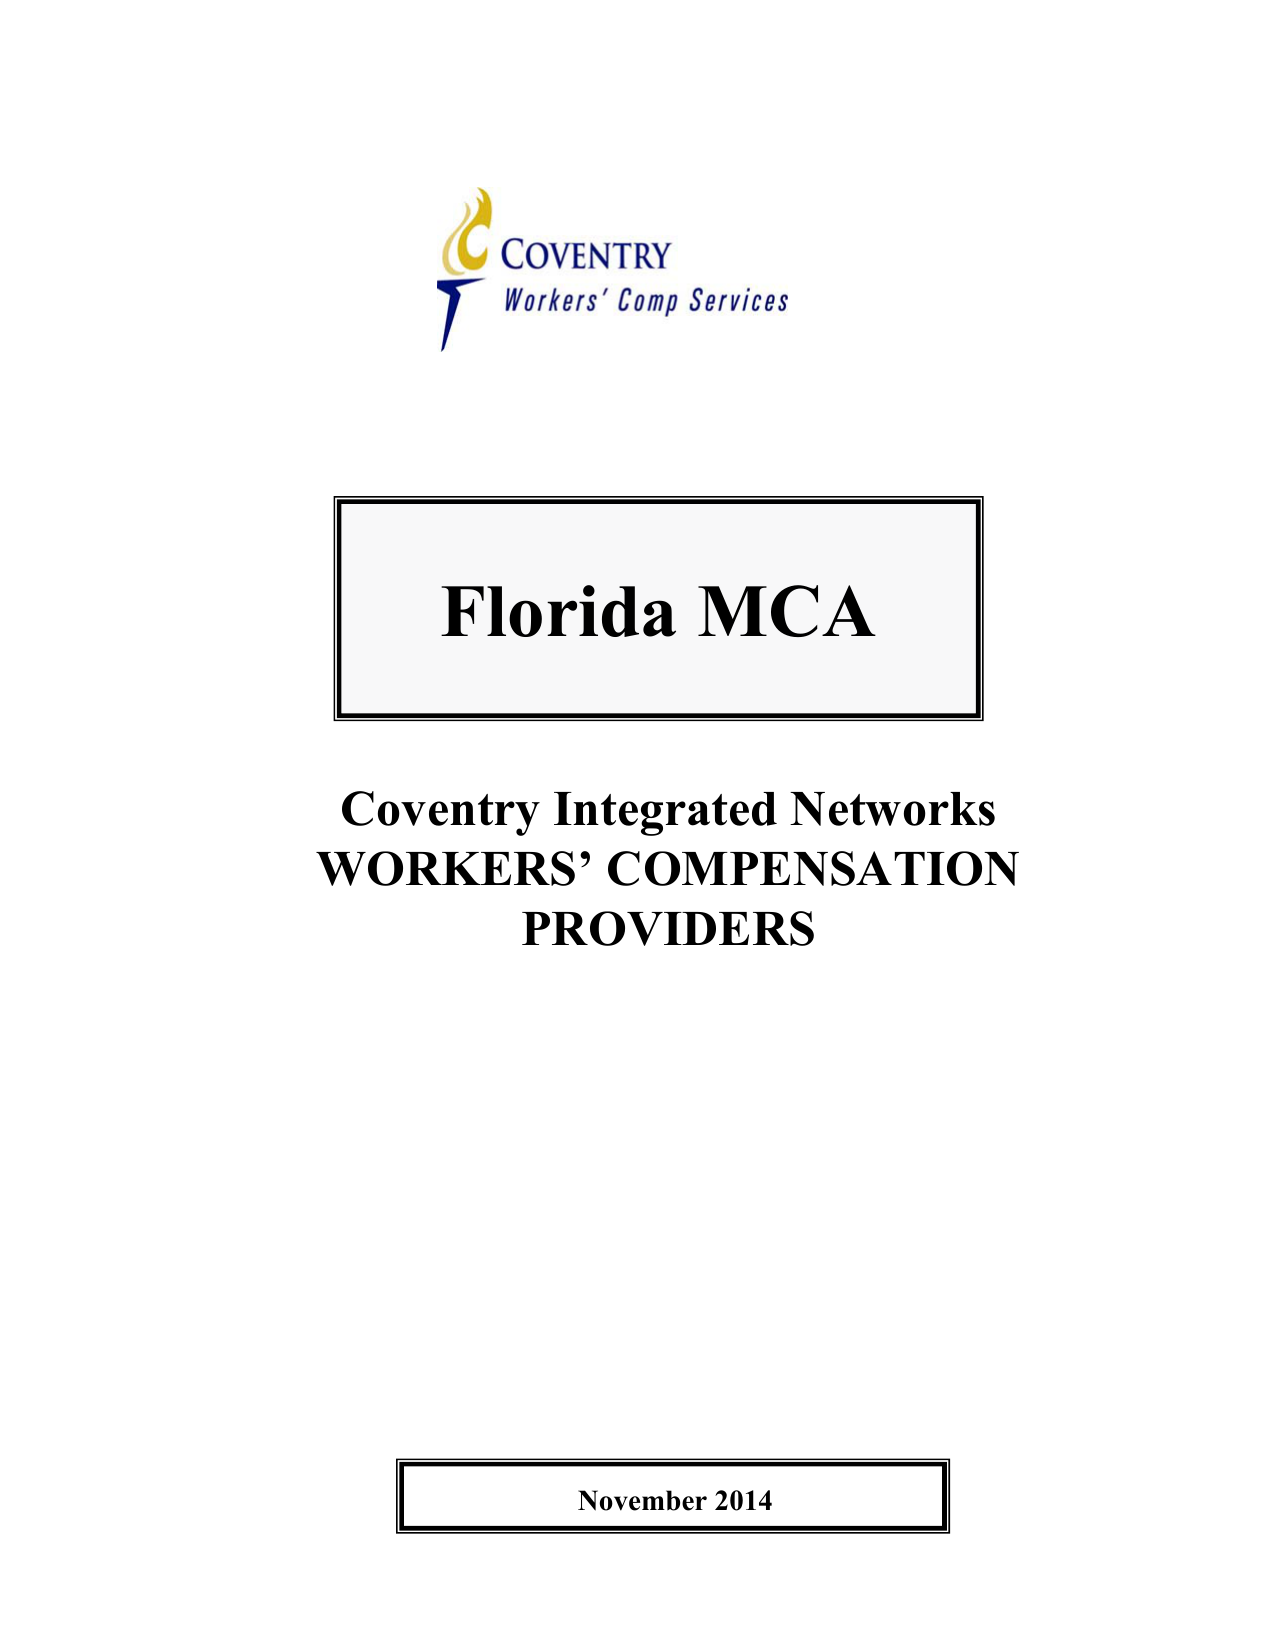 florida mca coventry workers comp services